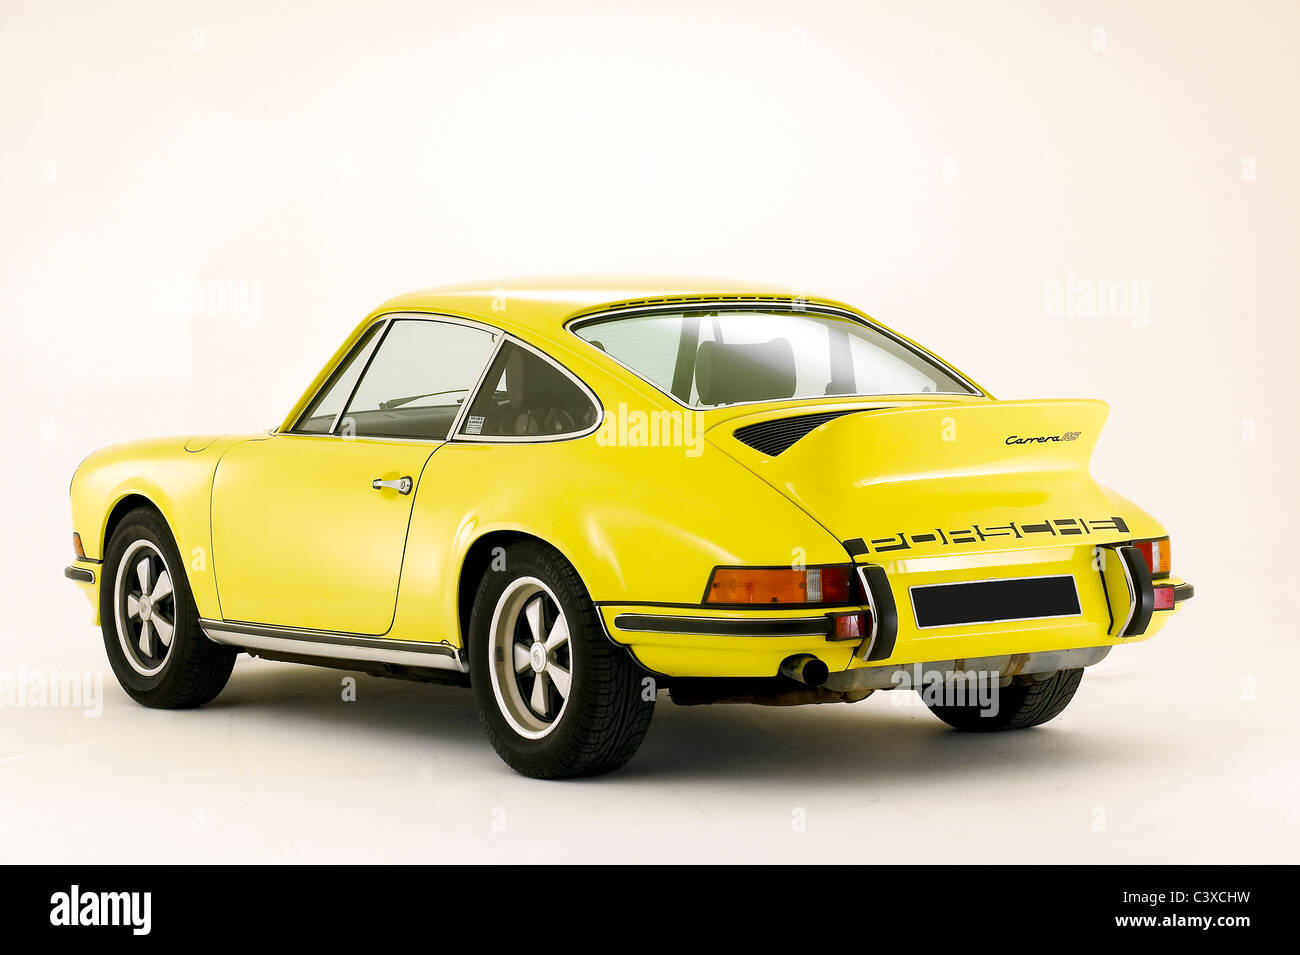 Classic Porsche 911 Rear Stock Photos 1973 912 Coupe Type Of Engine Carrera Rs 27 Image